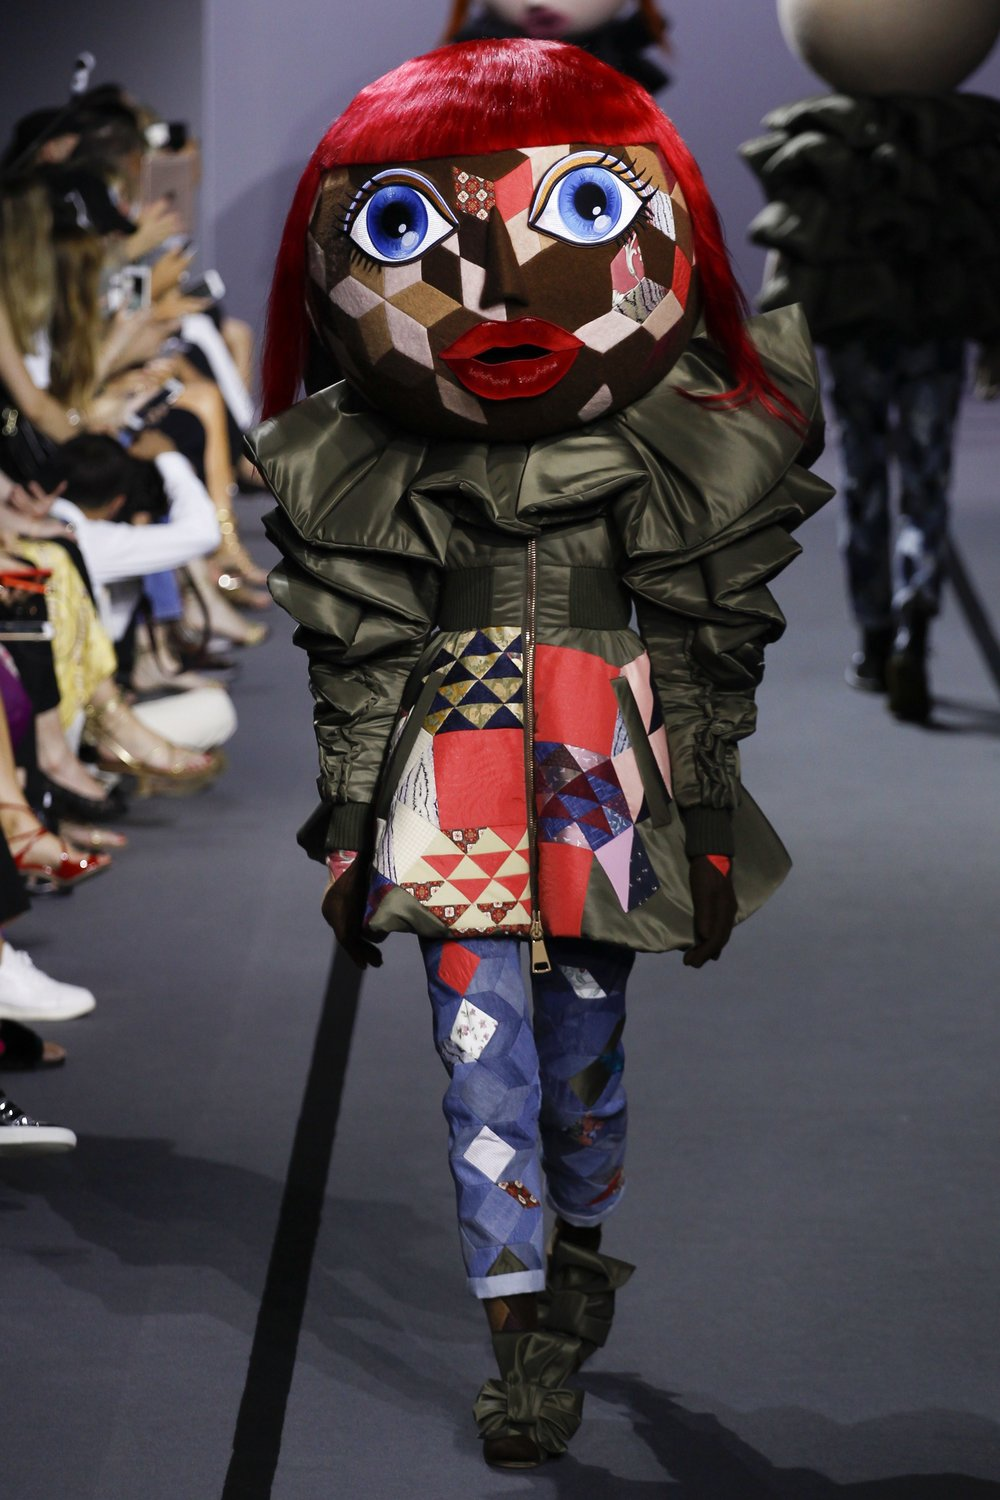 Viktor and Rolf look 15